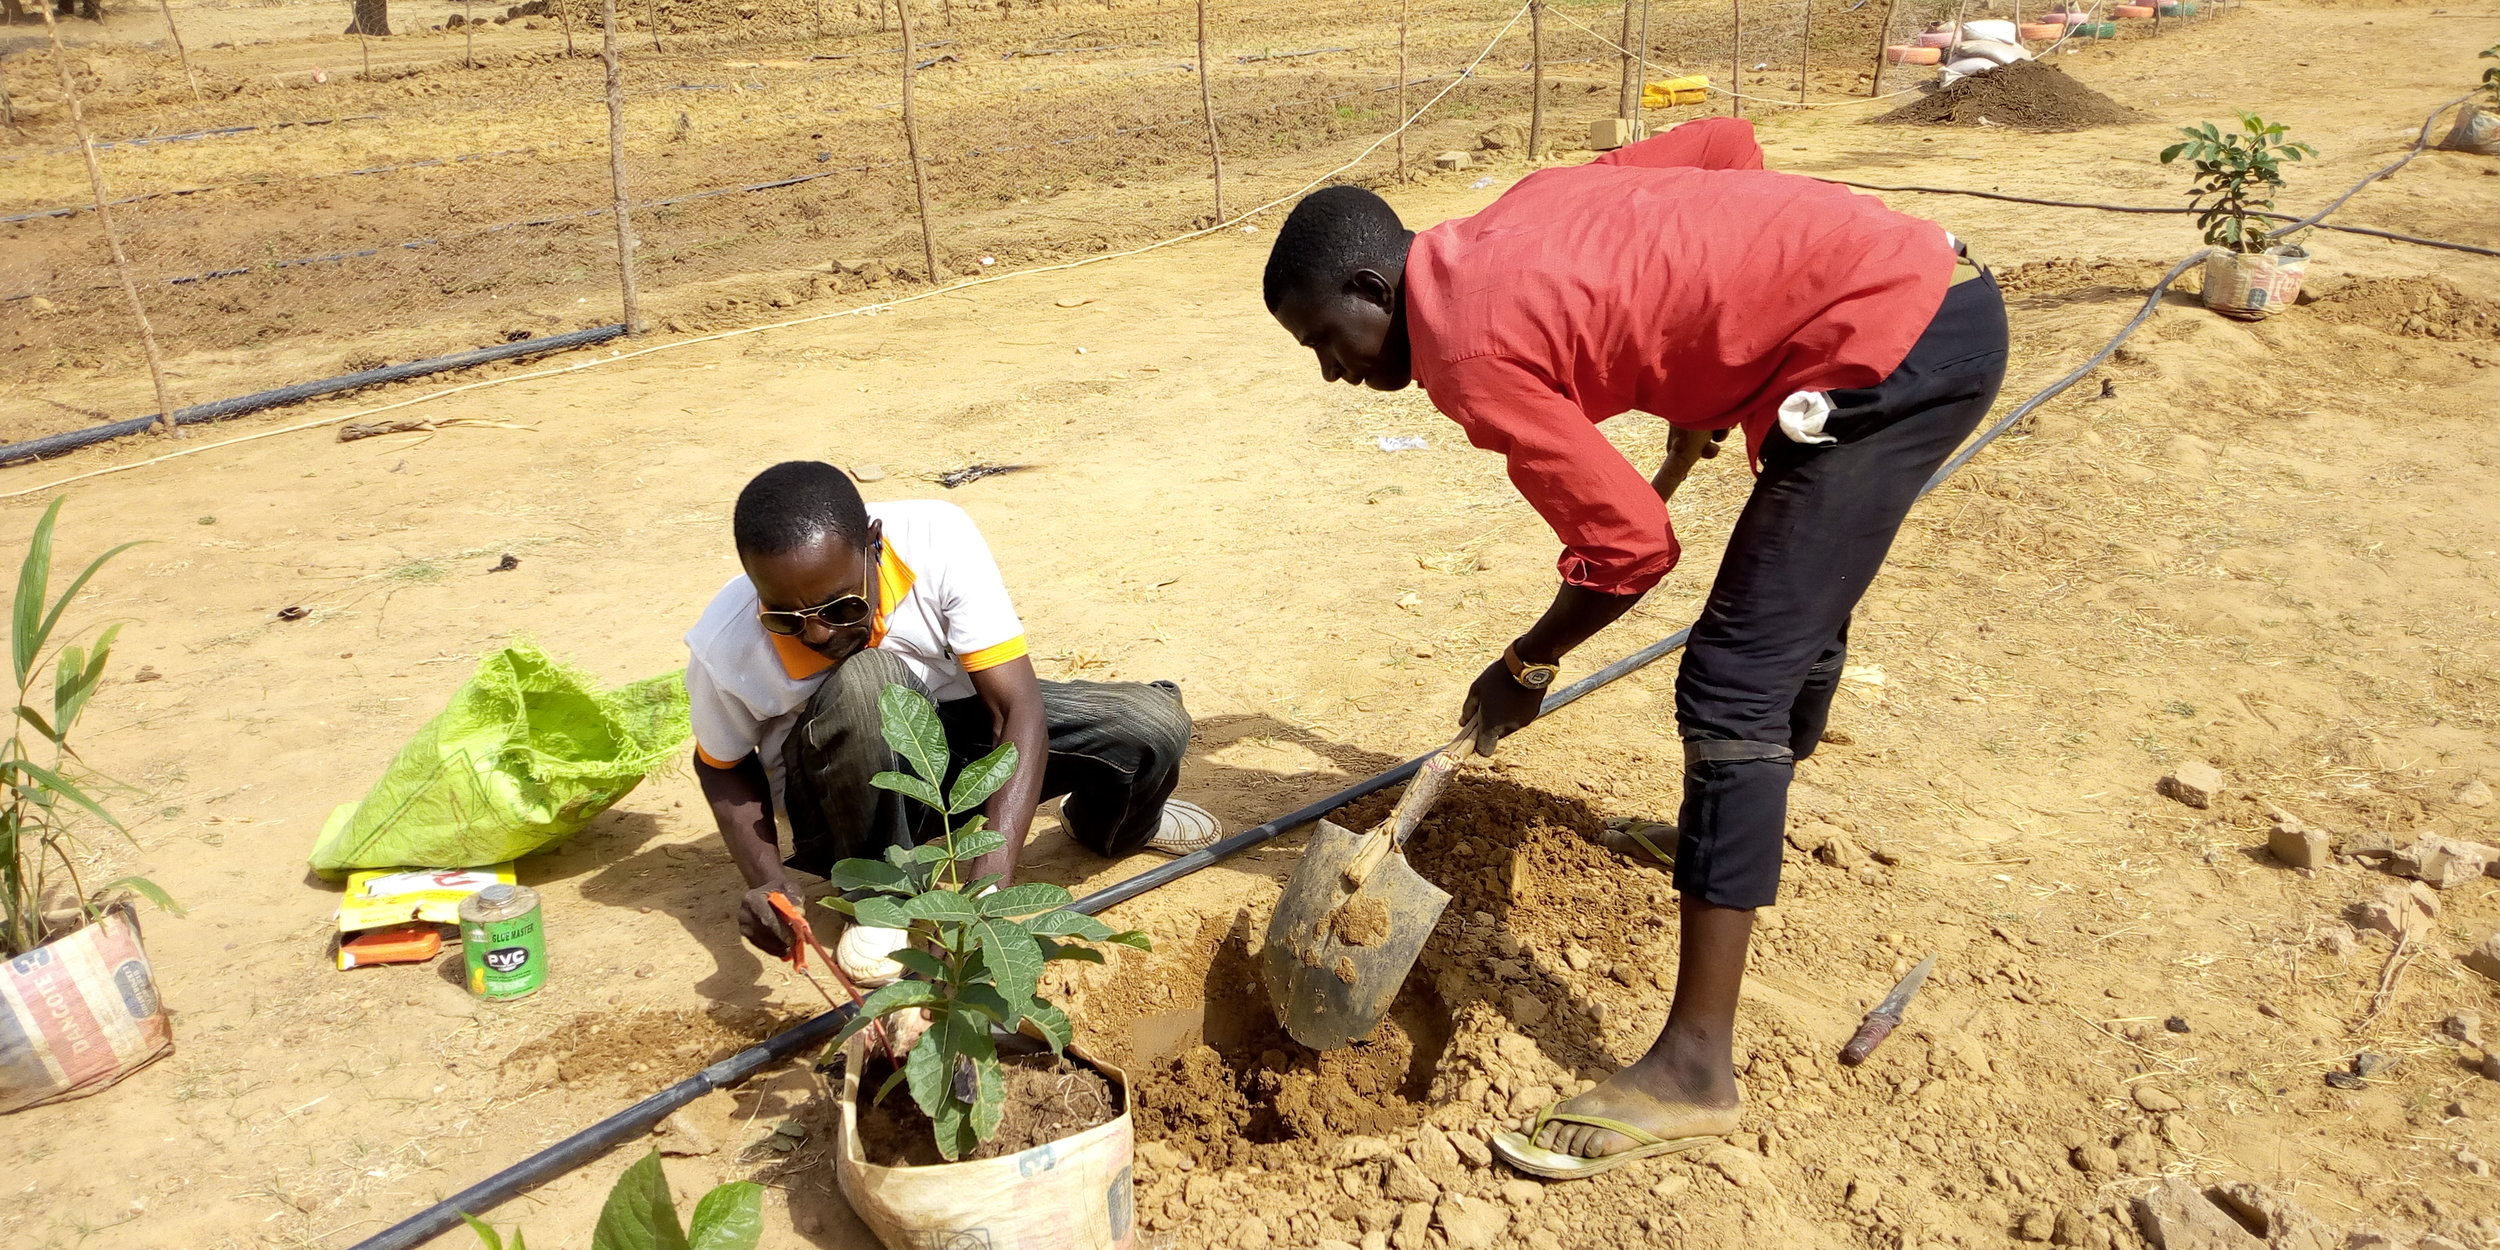 New plants help give definition to the space. Credit: UN-Habitat